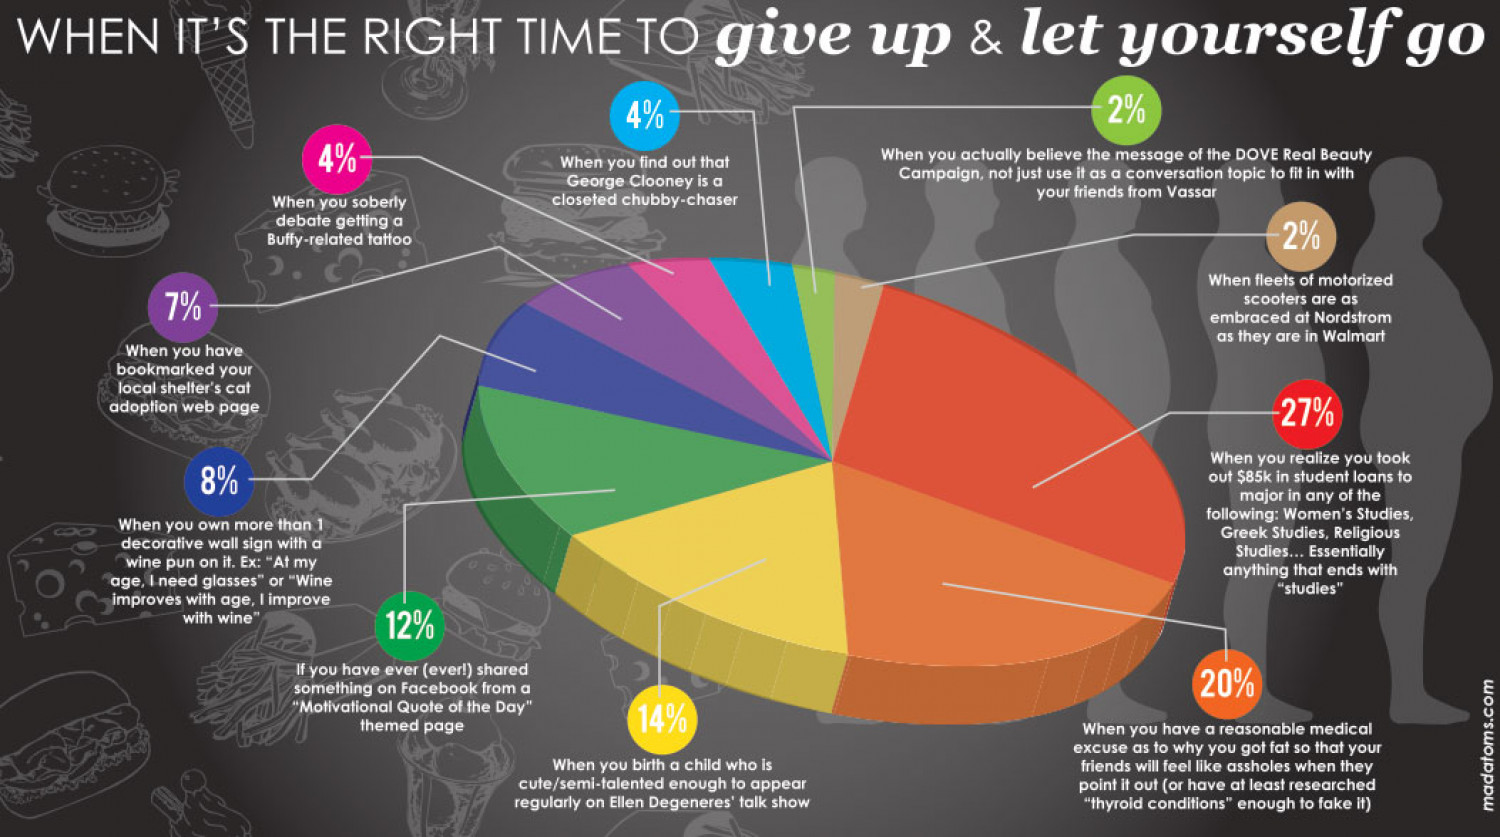 When It's the Right Time to Give Up and Let Yourself Go Infographic